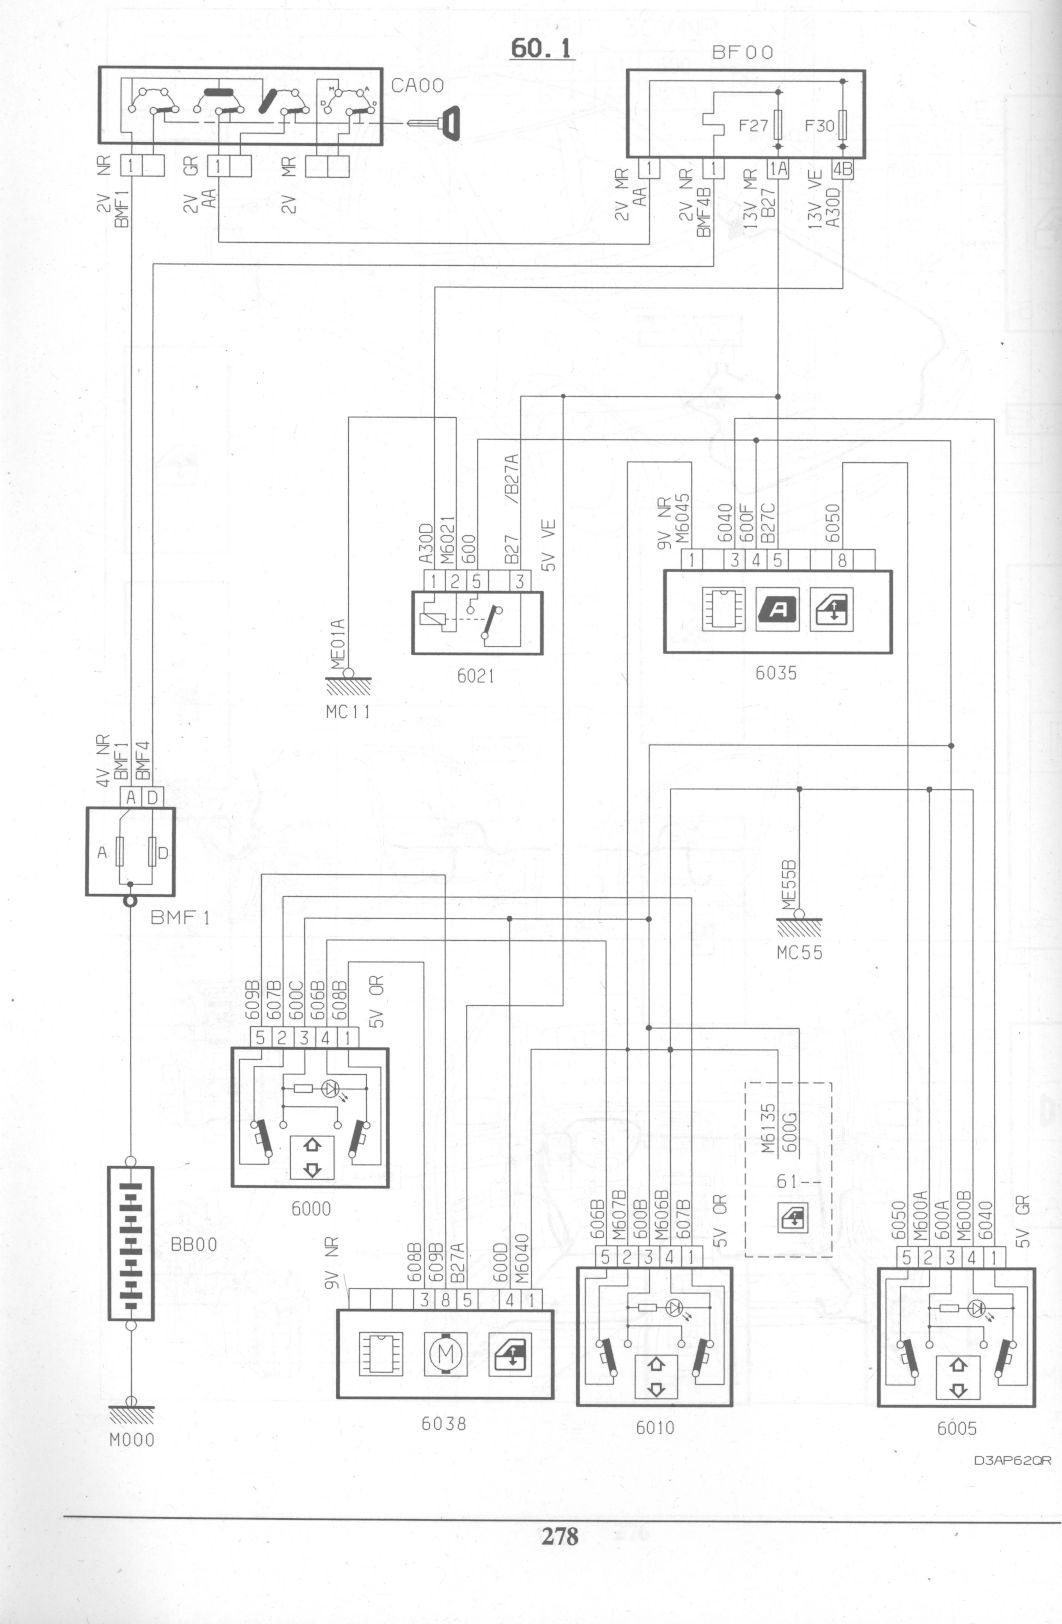 WRG-7159] Citroen Xantia Hdi Wiring Diagram on